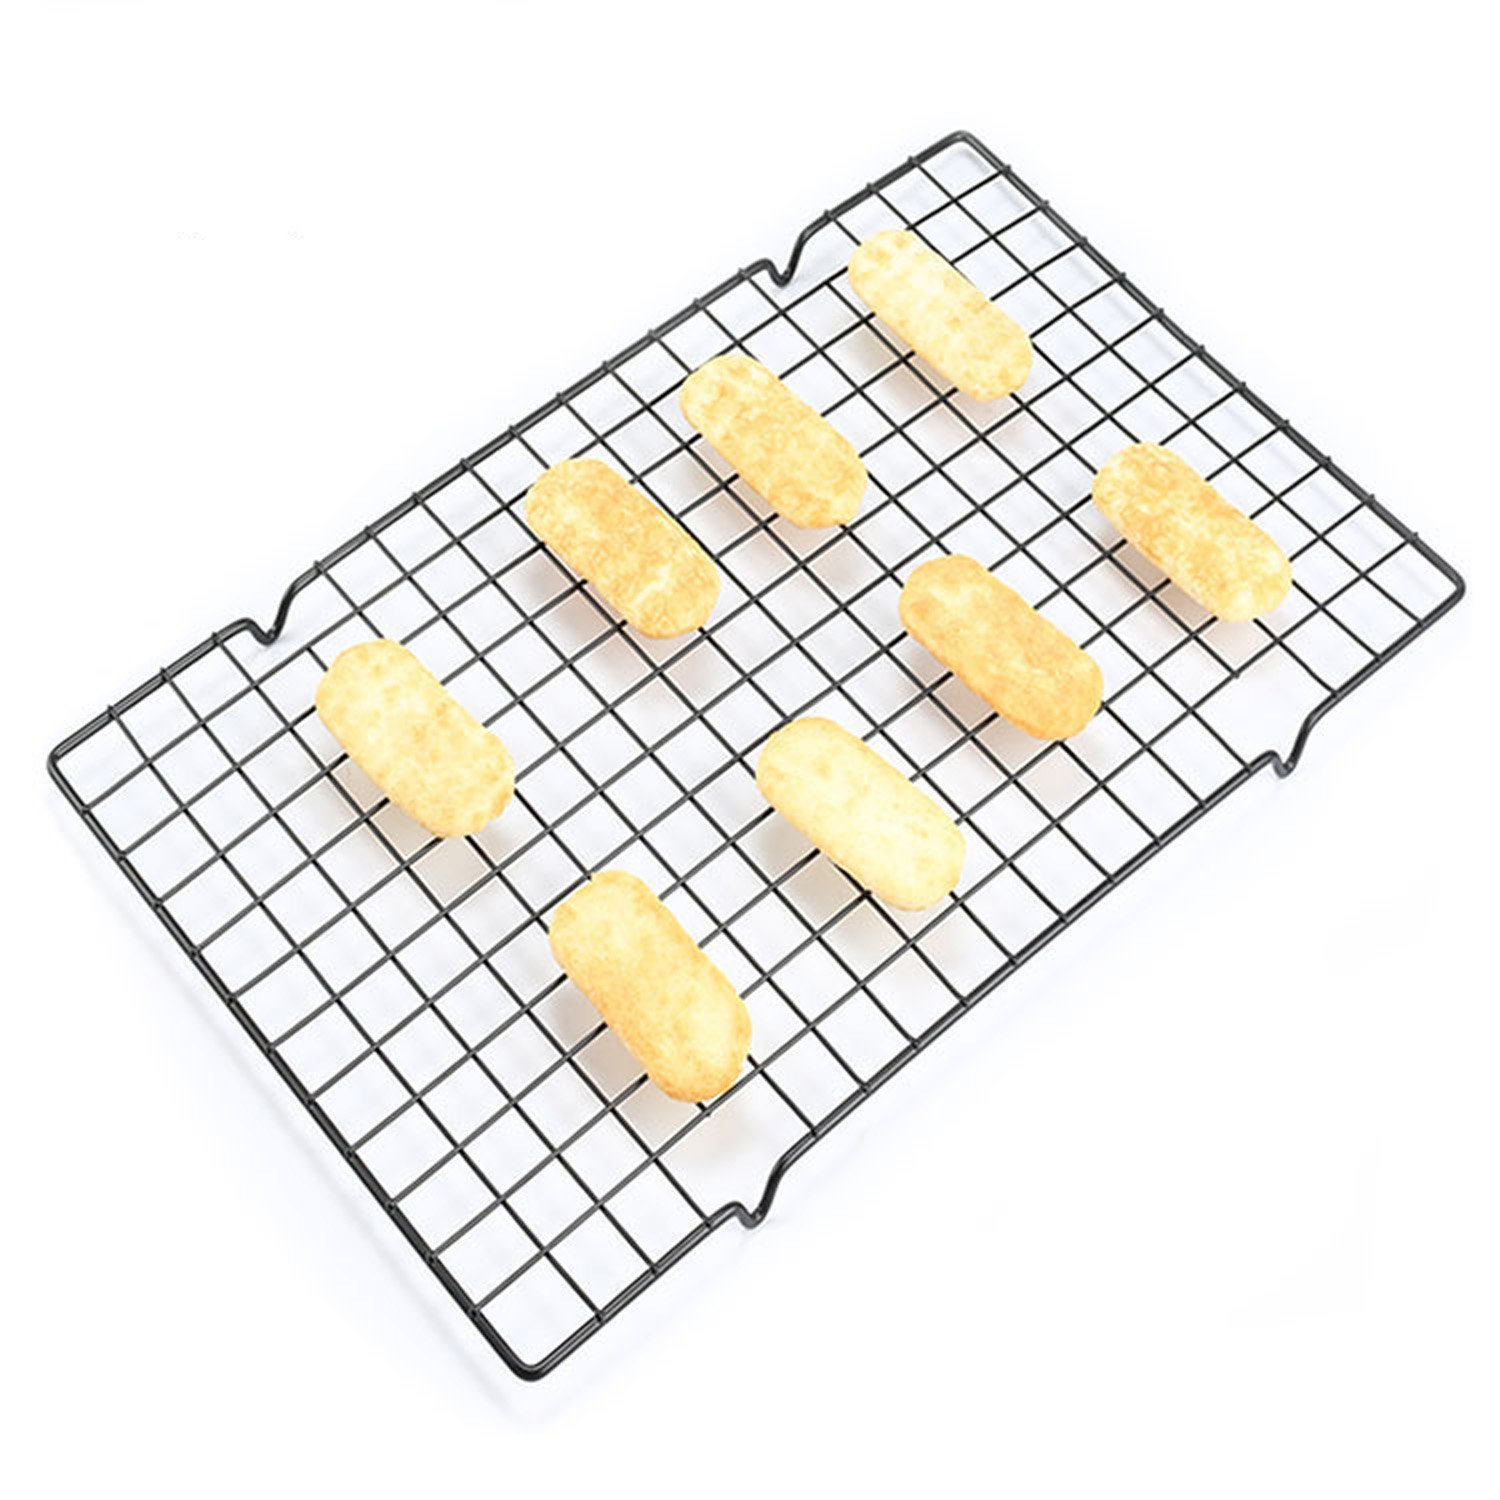 stainless steel cooling rack 16 inches x 10 inches heavy duty 10 X 10 Building Plans stainless steel cooling rack 16 inches x 10 inches heavy duty mercial metal